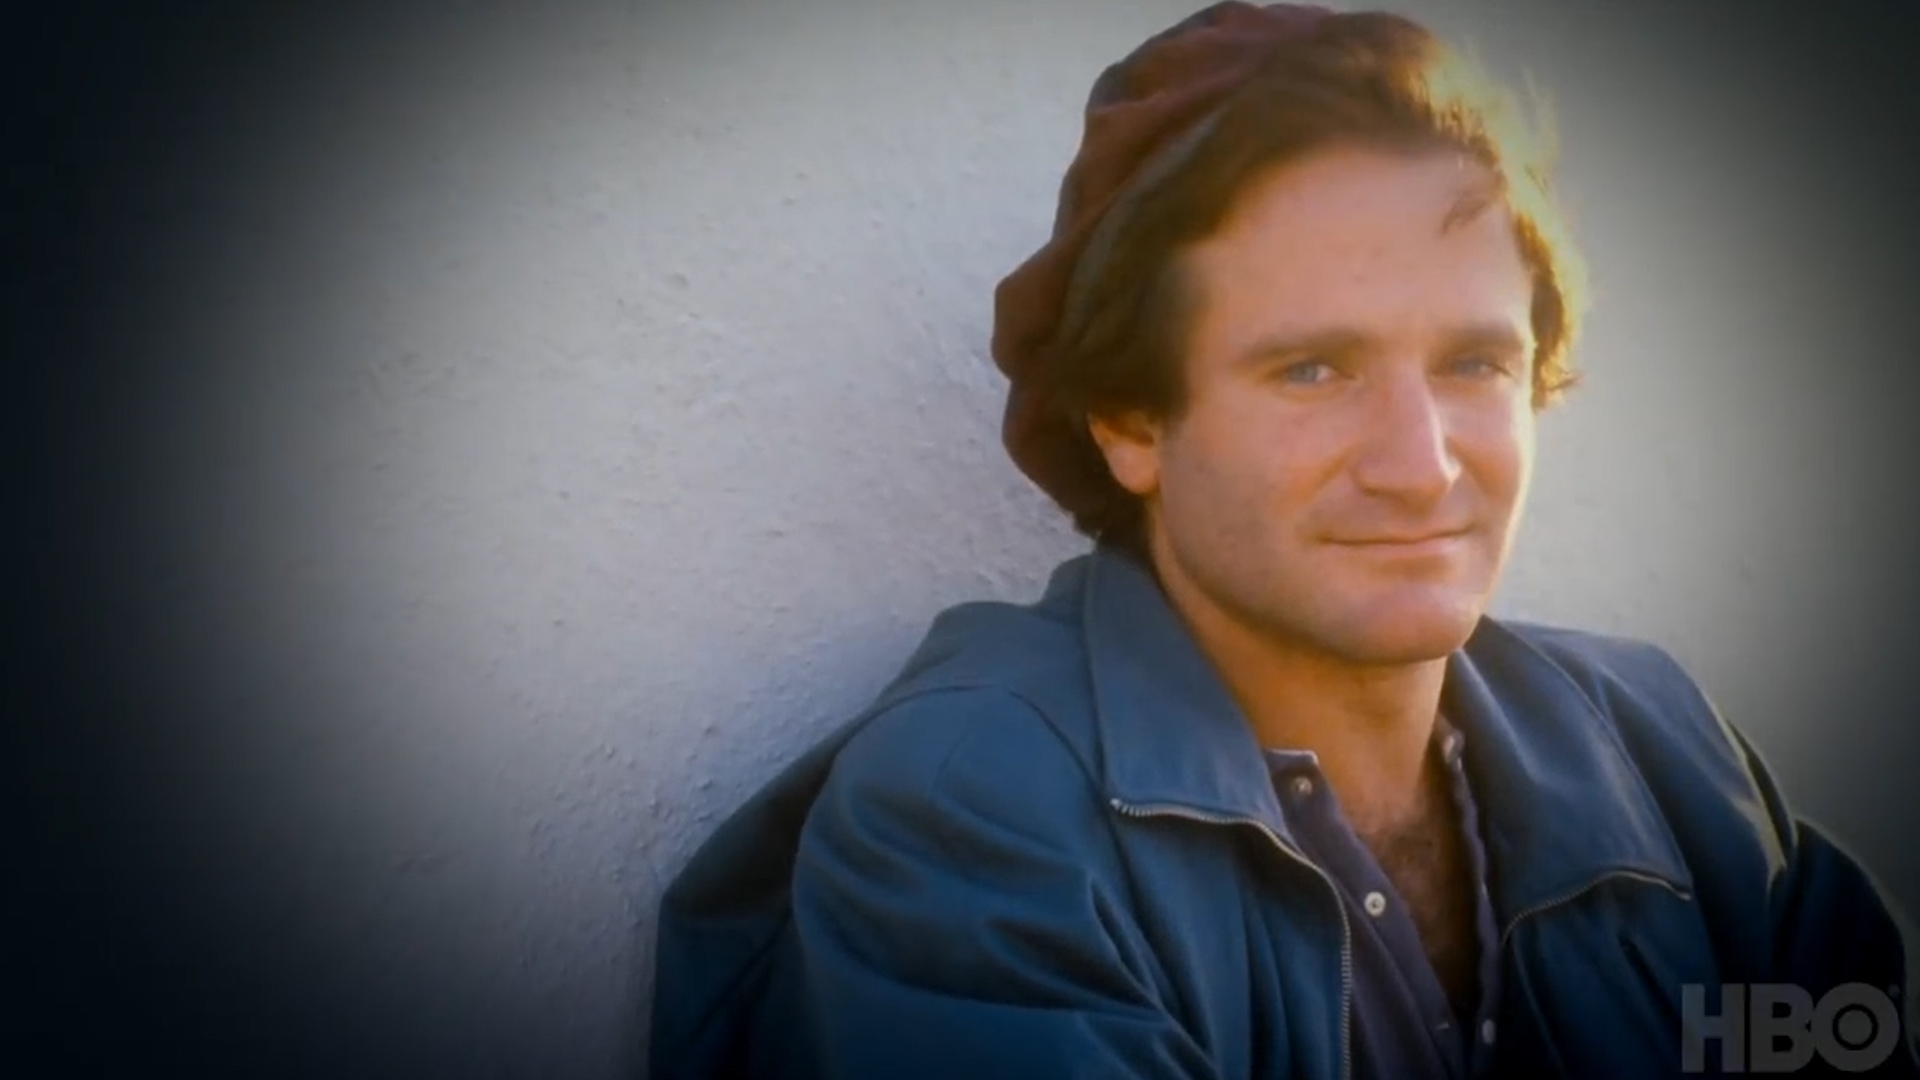 The amusing  and heartbreaking trailer drops for HBO's Robin Williams documentary